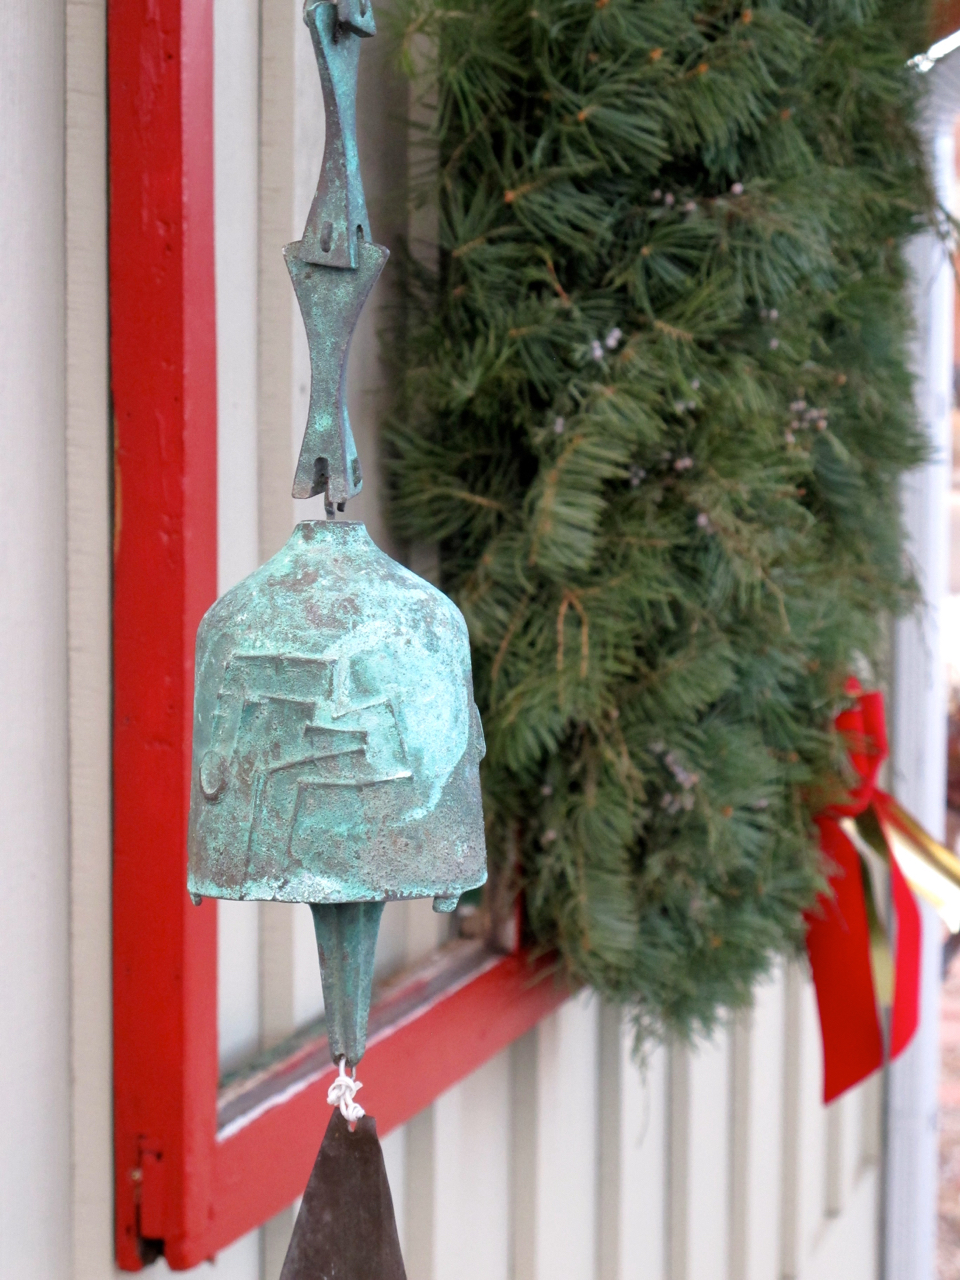 A bronze temple bell I hung near the wreath on Creek House where I hear the wind in the bell's deep voice.